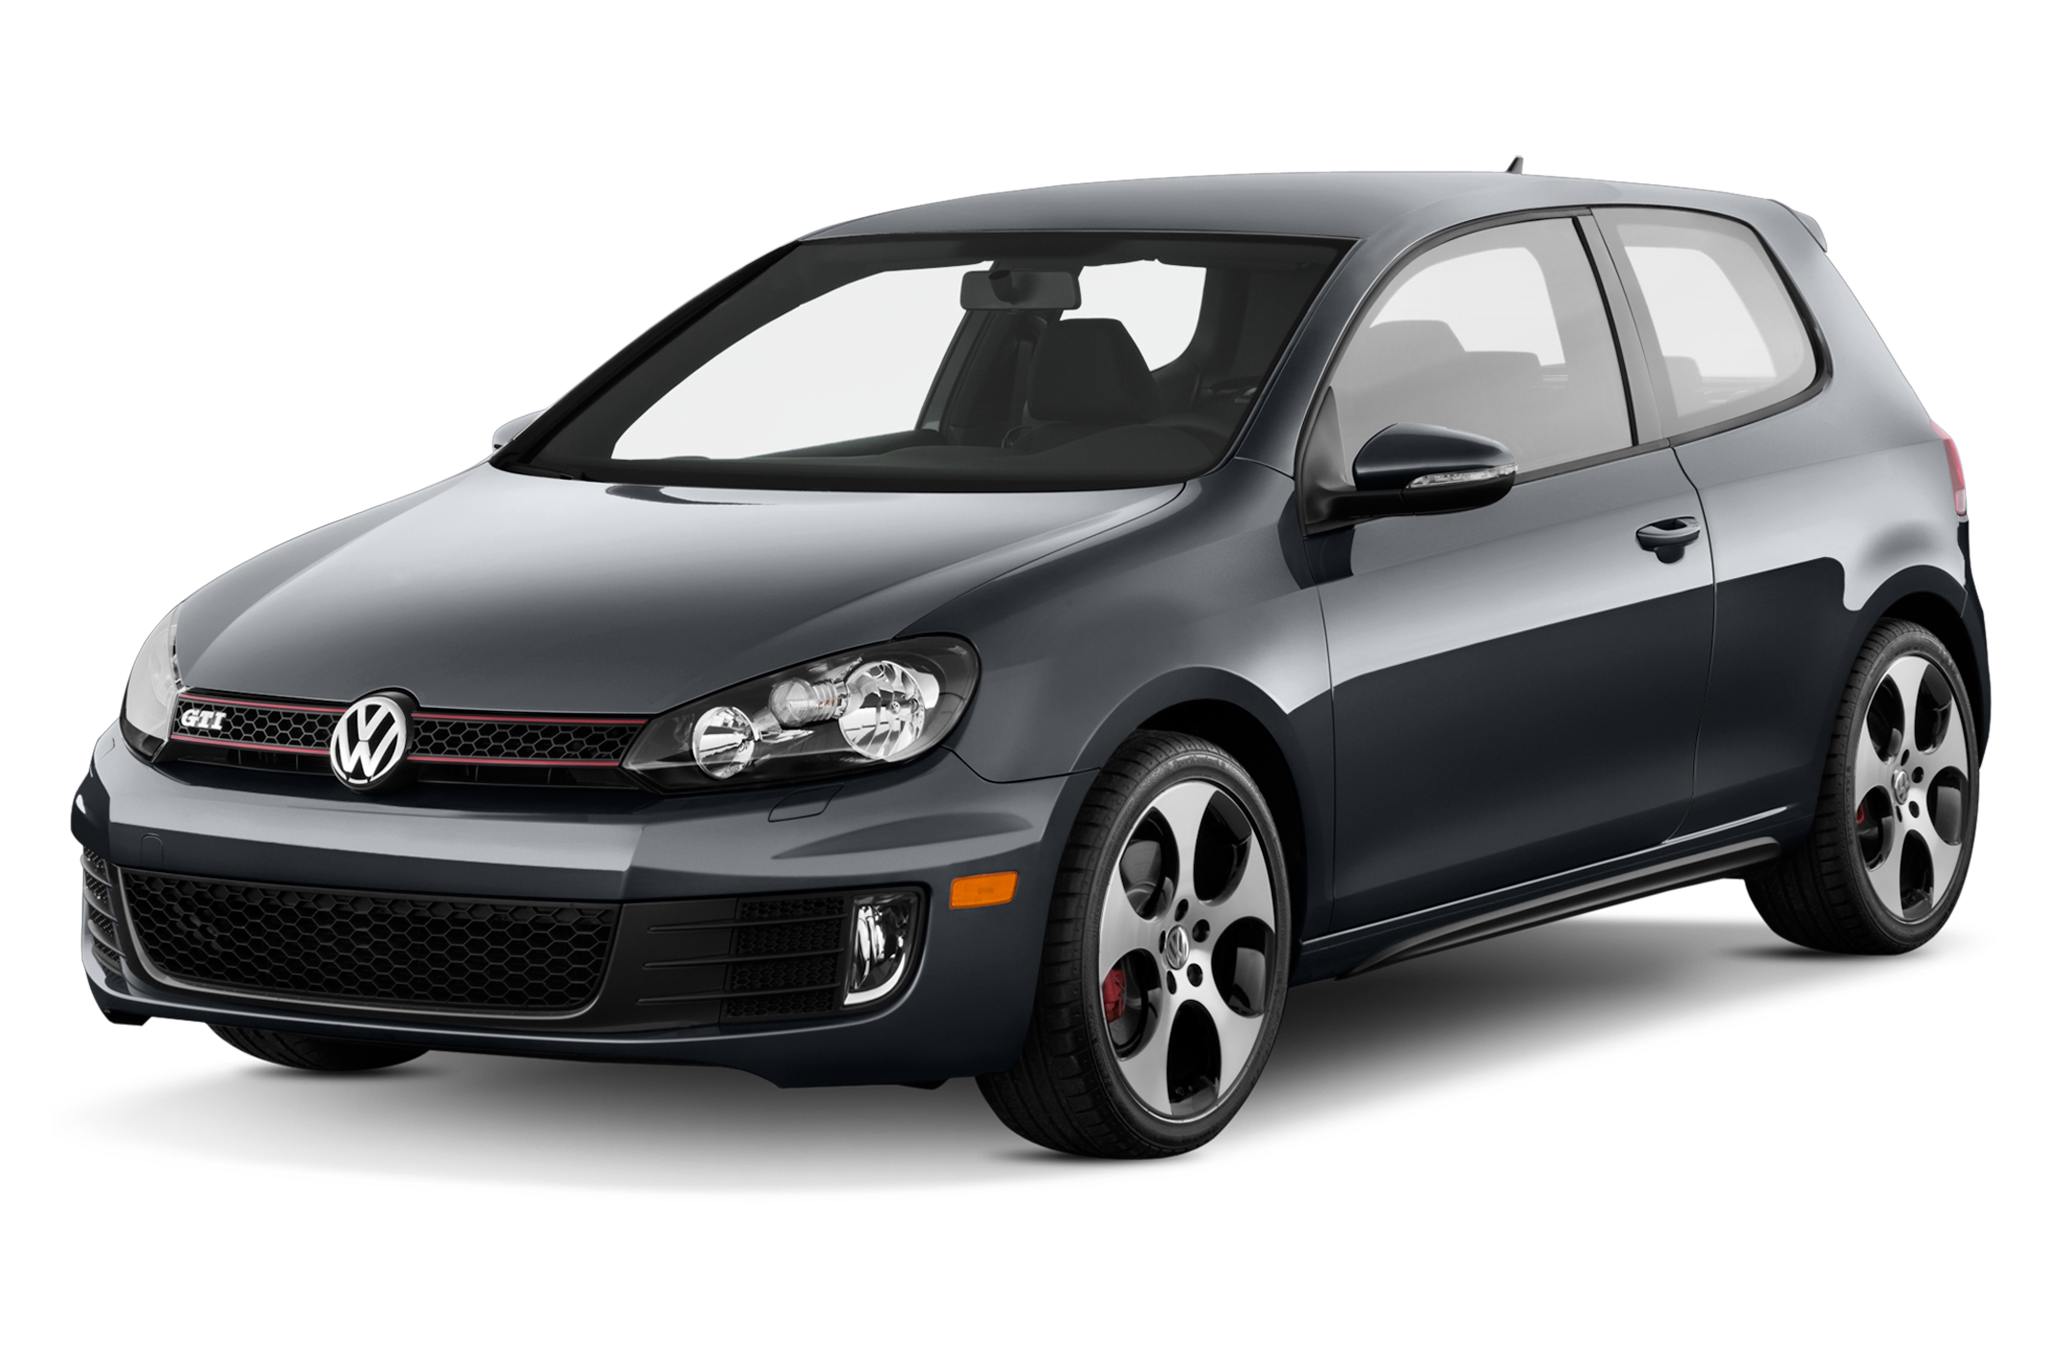 2012 volkswagen gti specs and features msn autos autos post. Black Bedroom Furniture Sets. Home Design Ideas